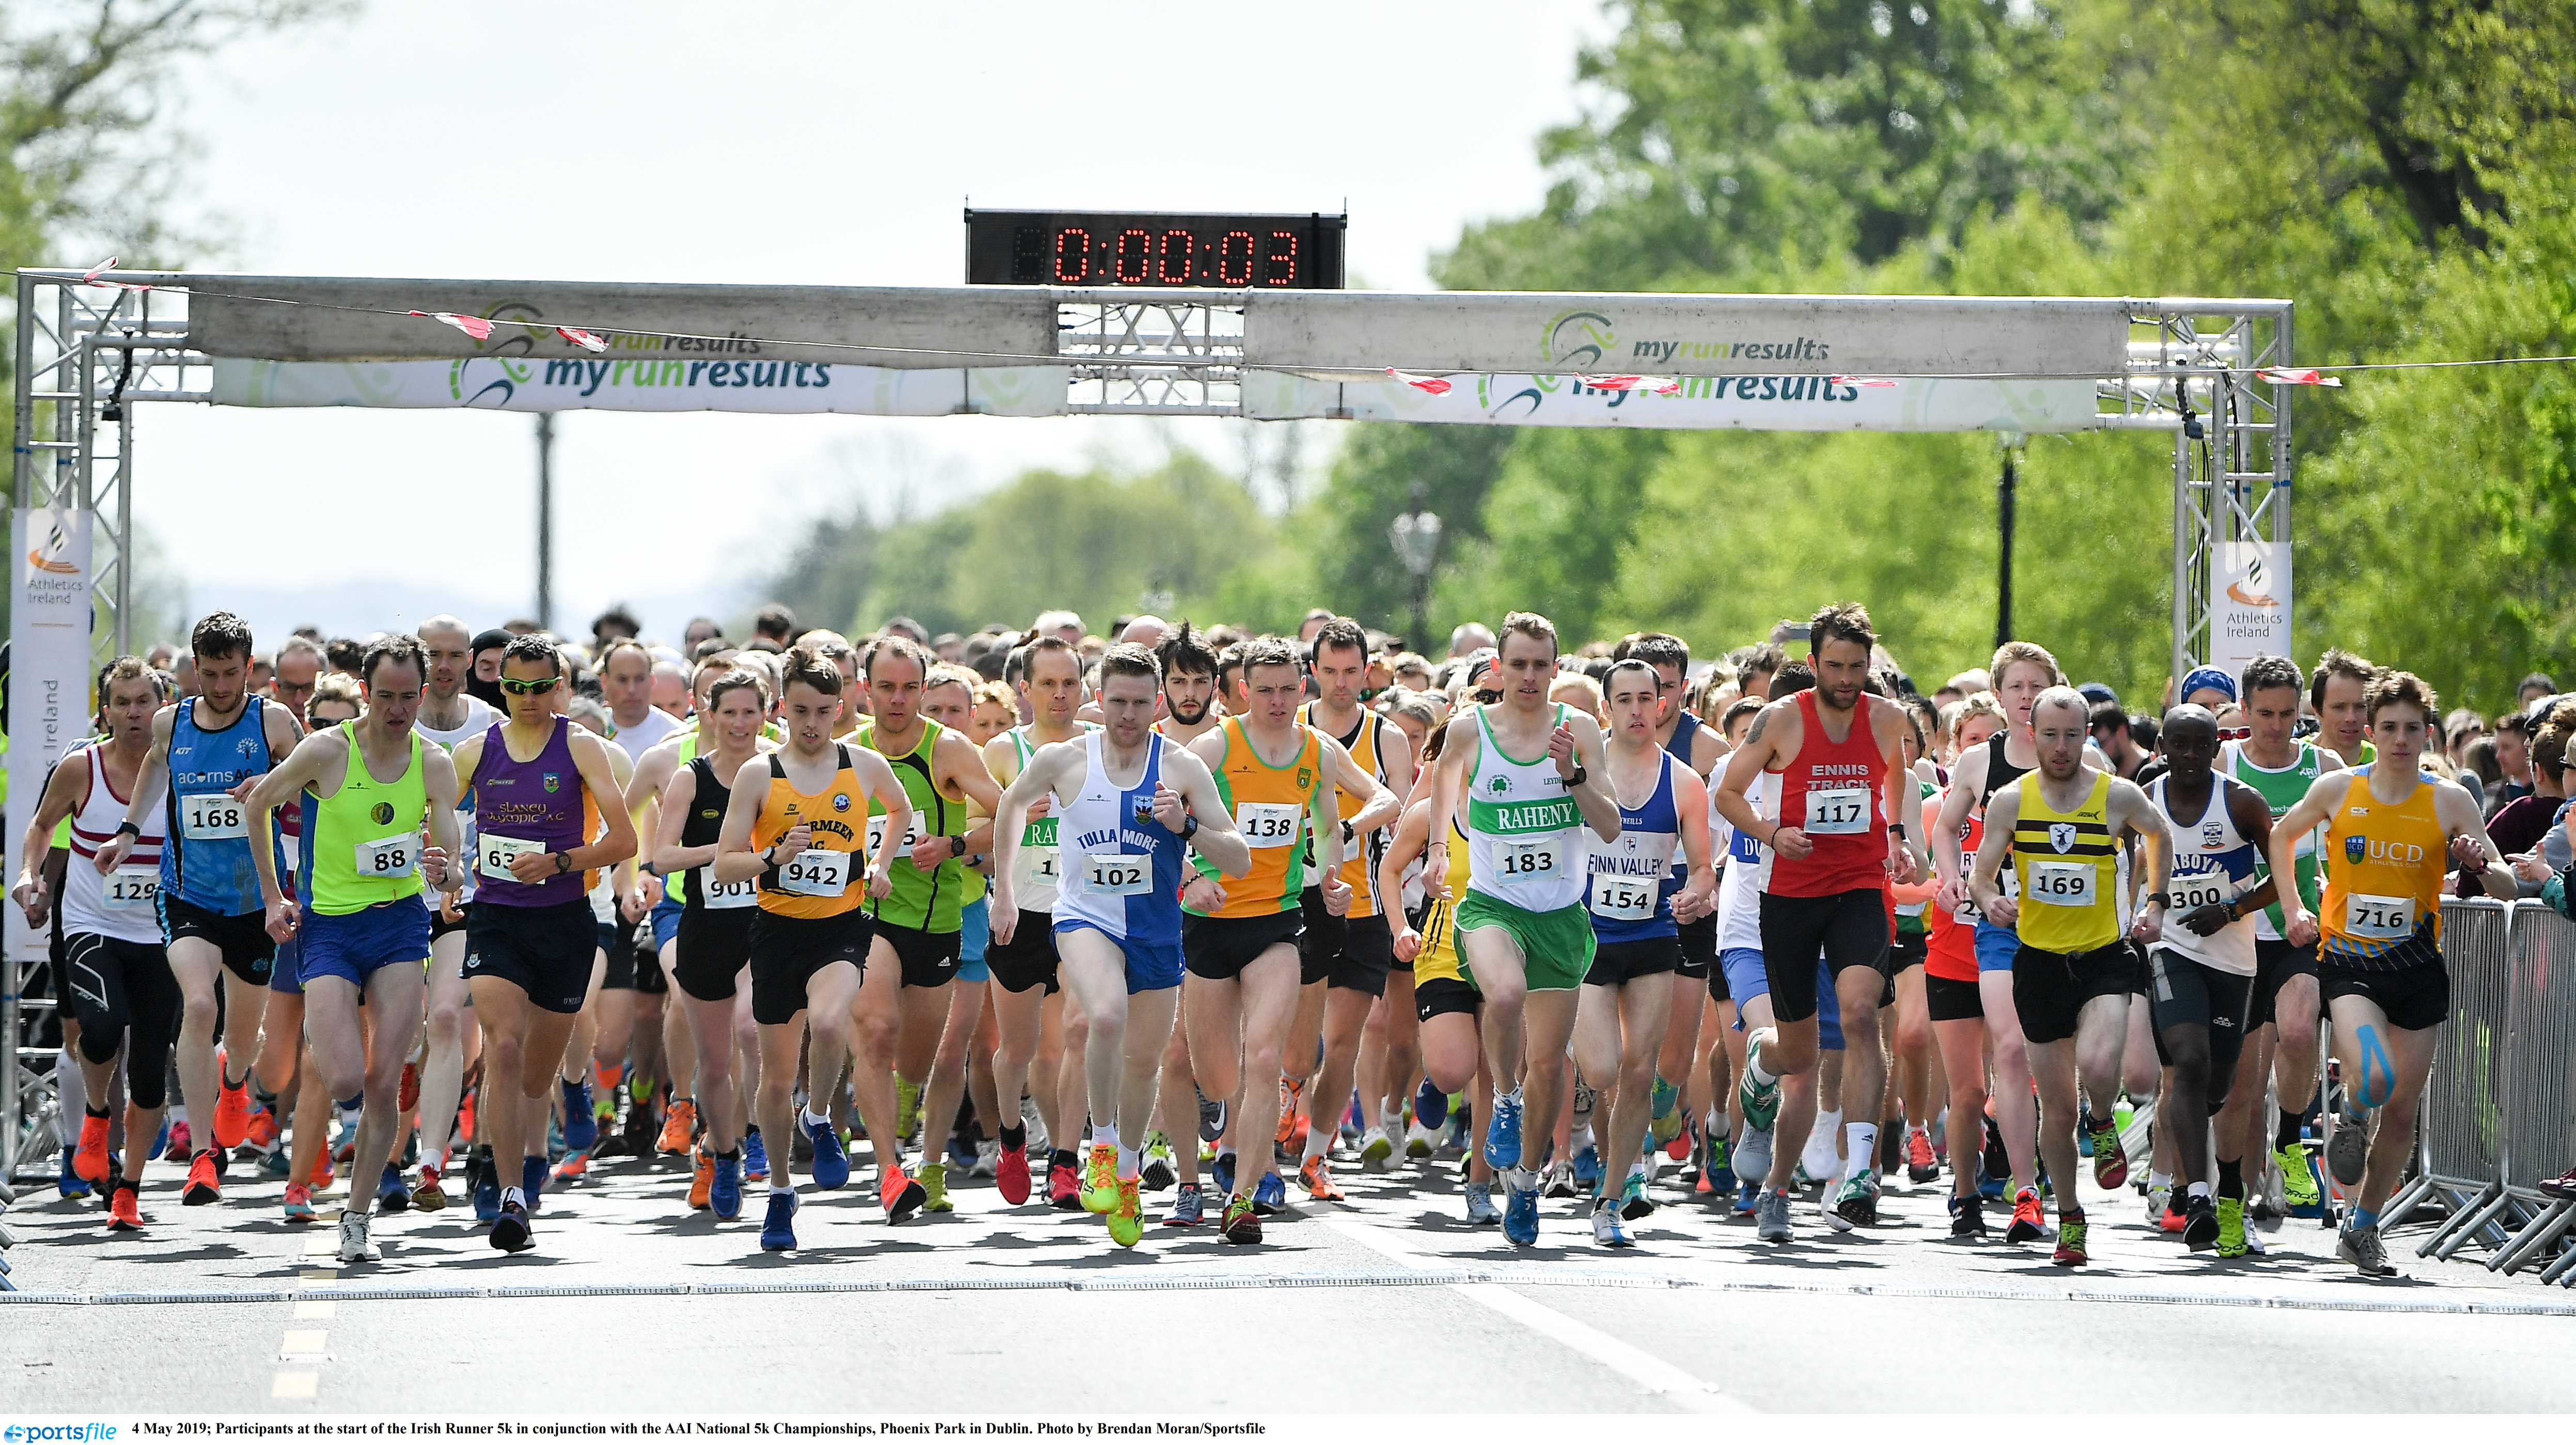 Irish Runner 5 mile set for another great day in the Park